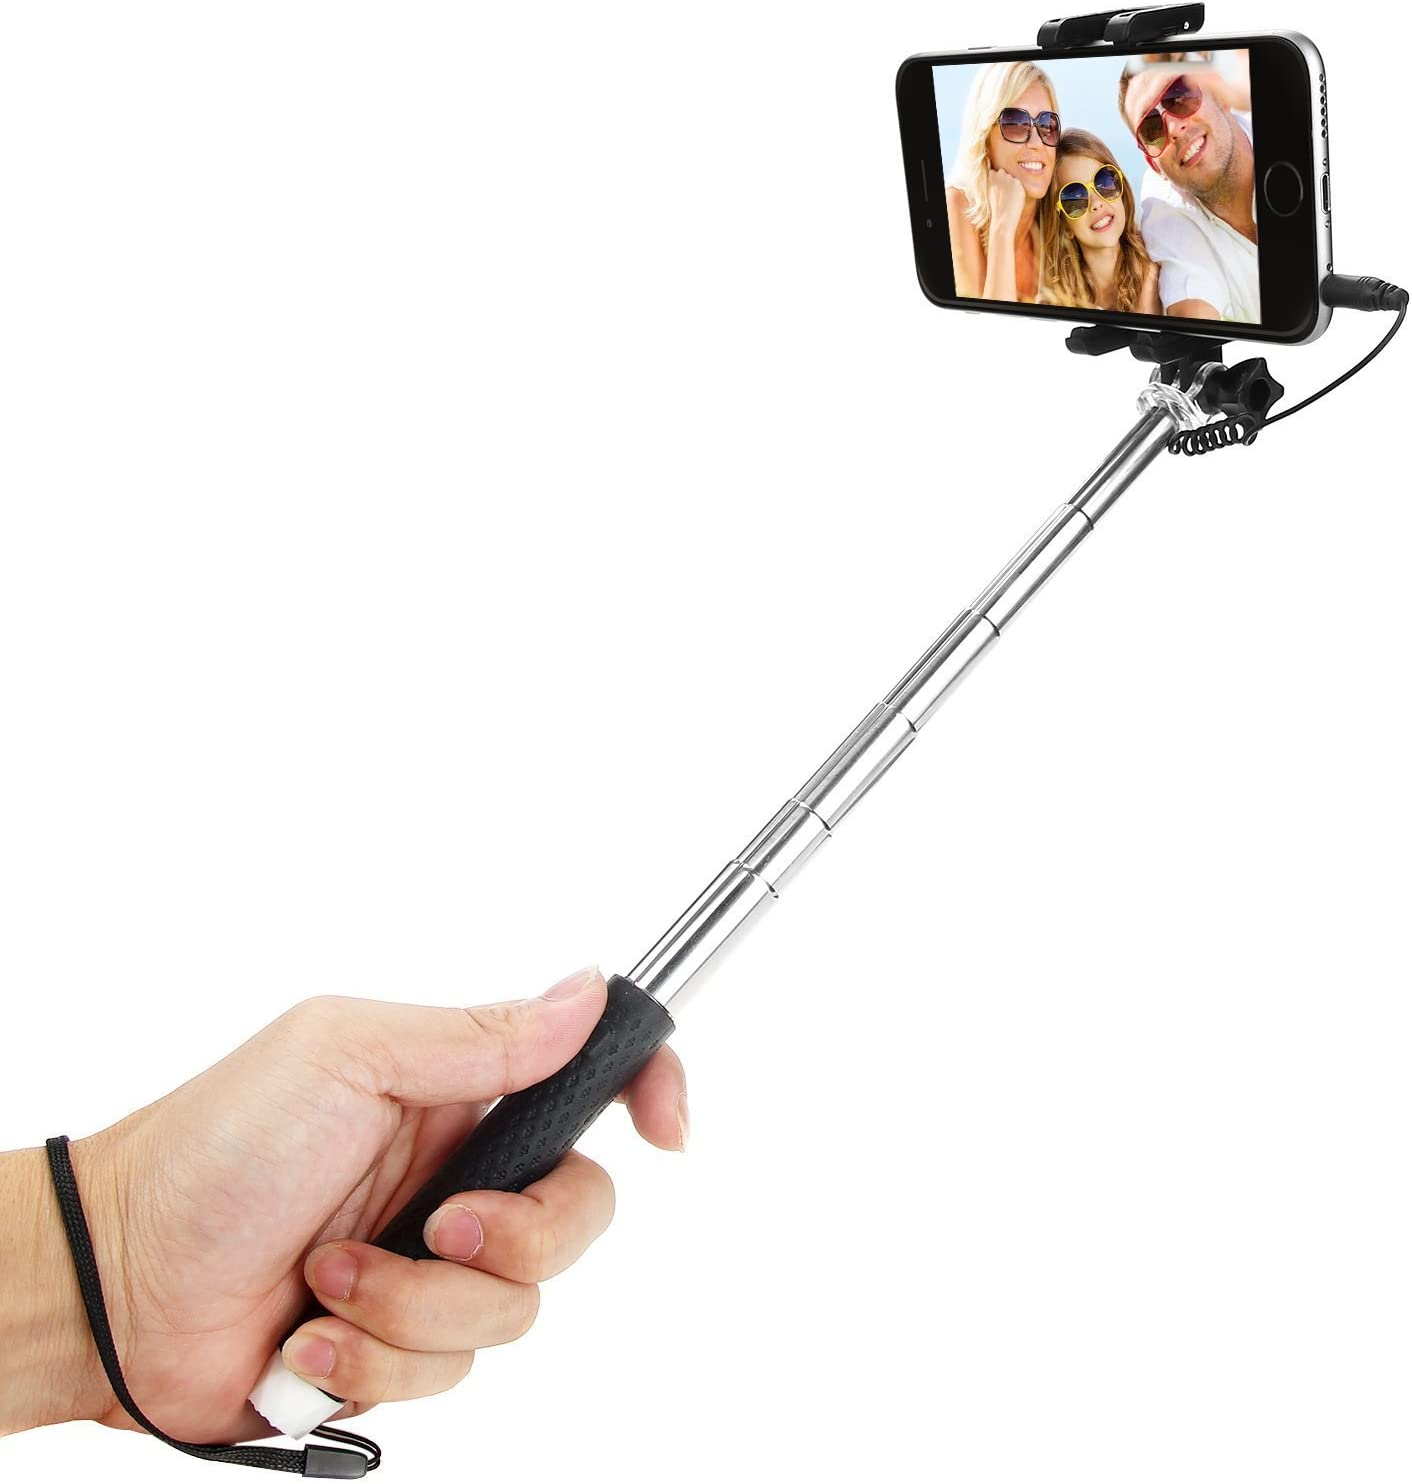 Wired LITE Handheld Pocket-sized Expandable Selfie Stick Monopod